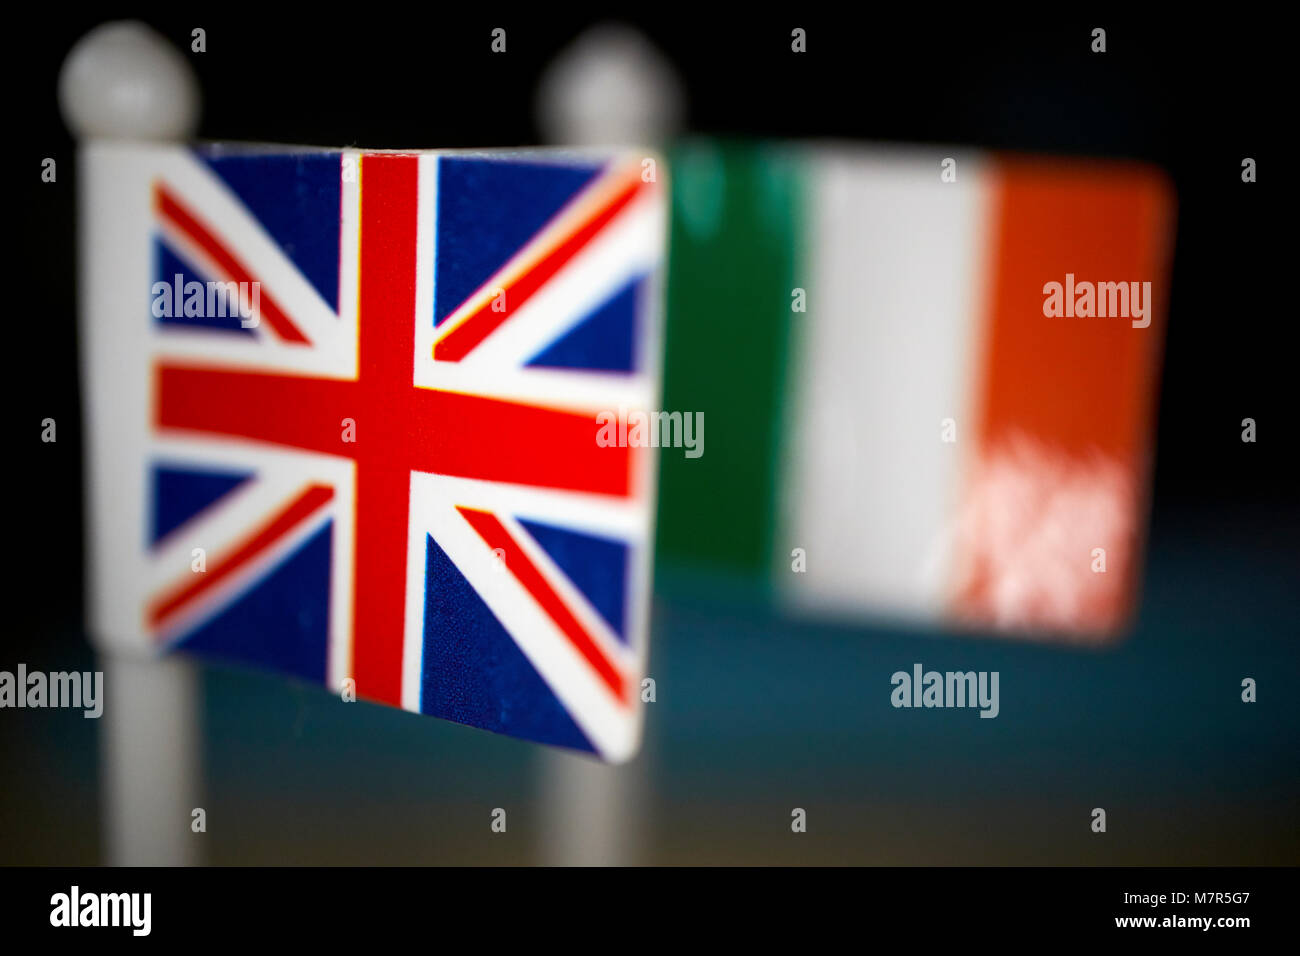 british union flag and irish tricolour flag brexit flags Stock Photo